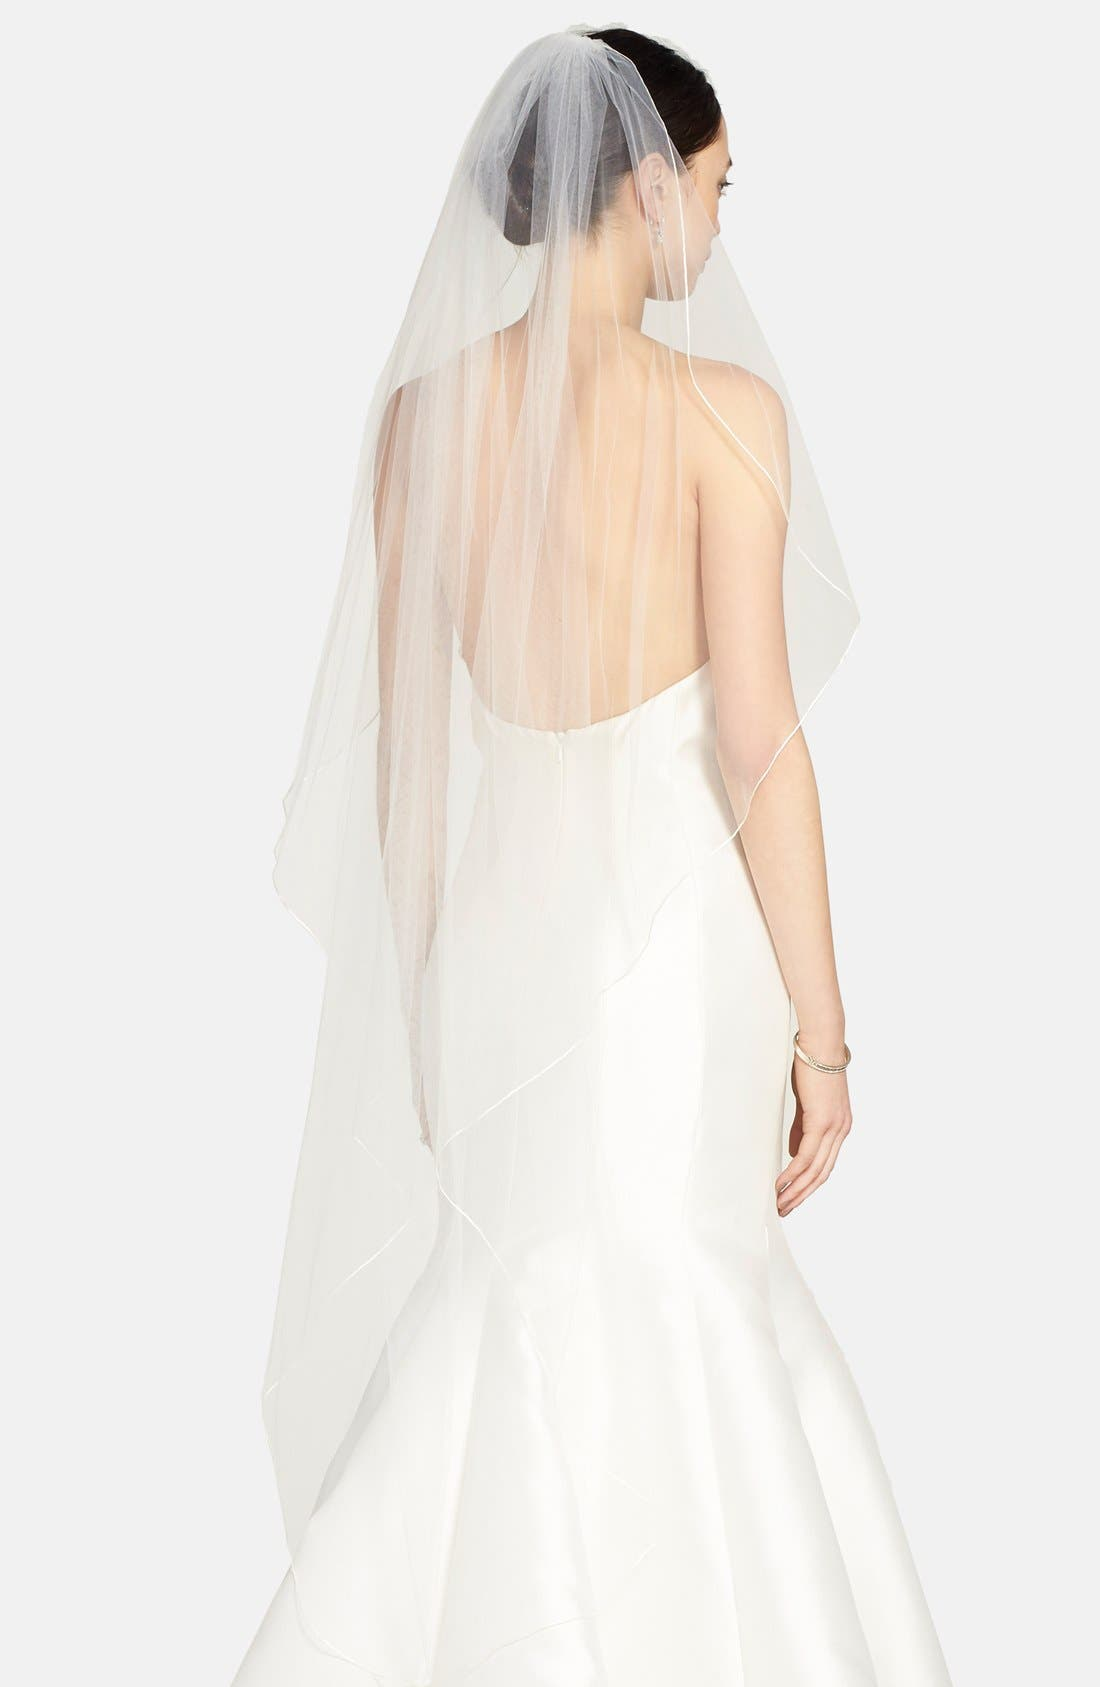 'Avalon' Cascading Waltz Length Veil,                             Main thumbnail 1, color,                             Light Ivory